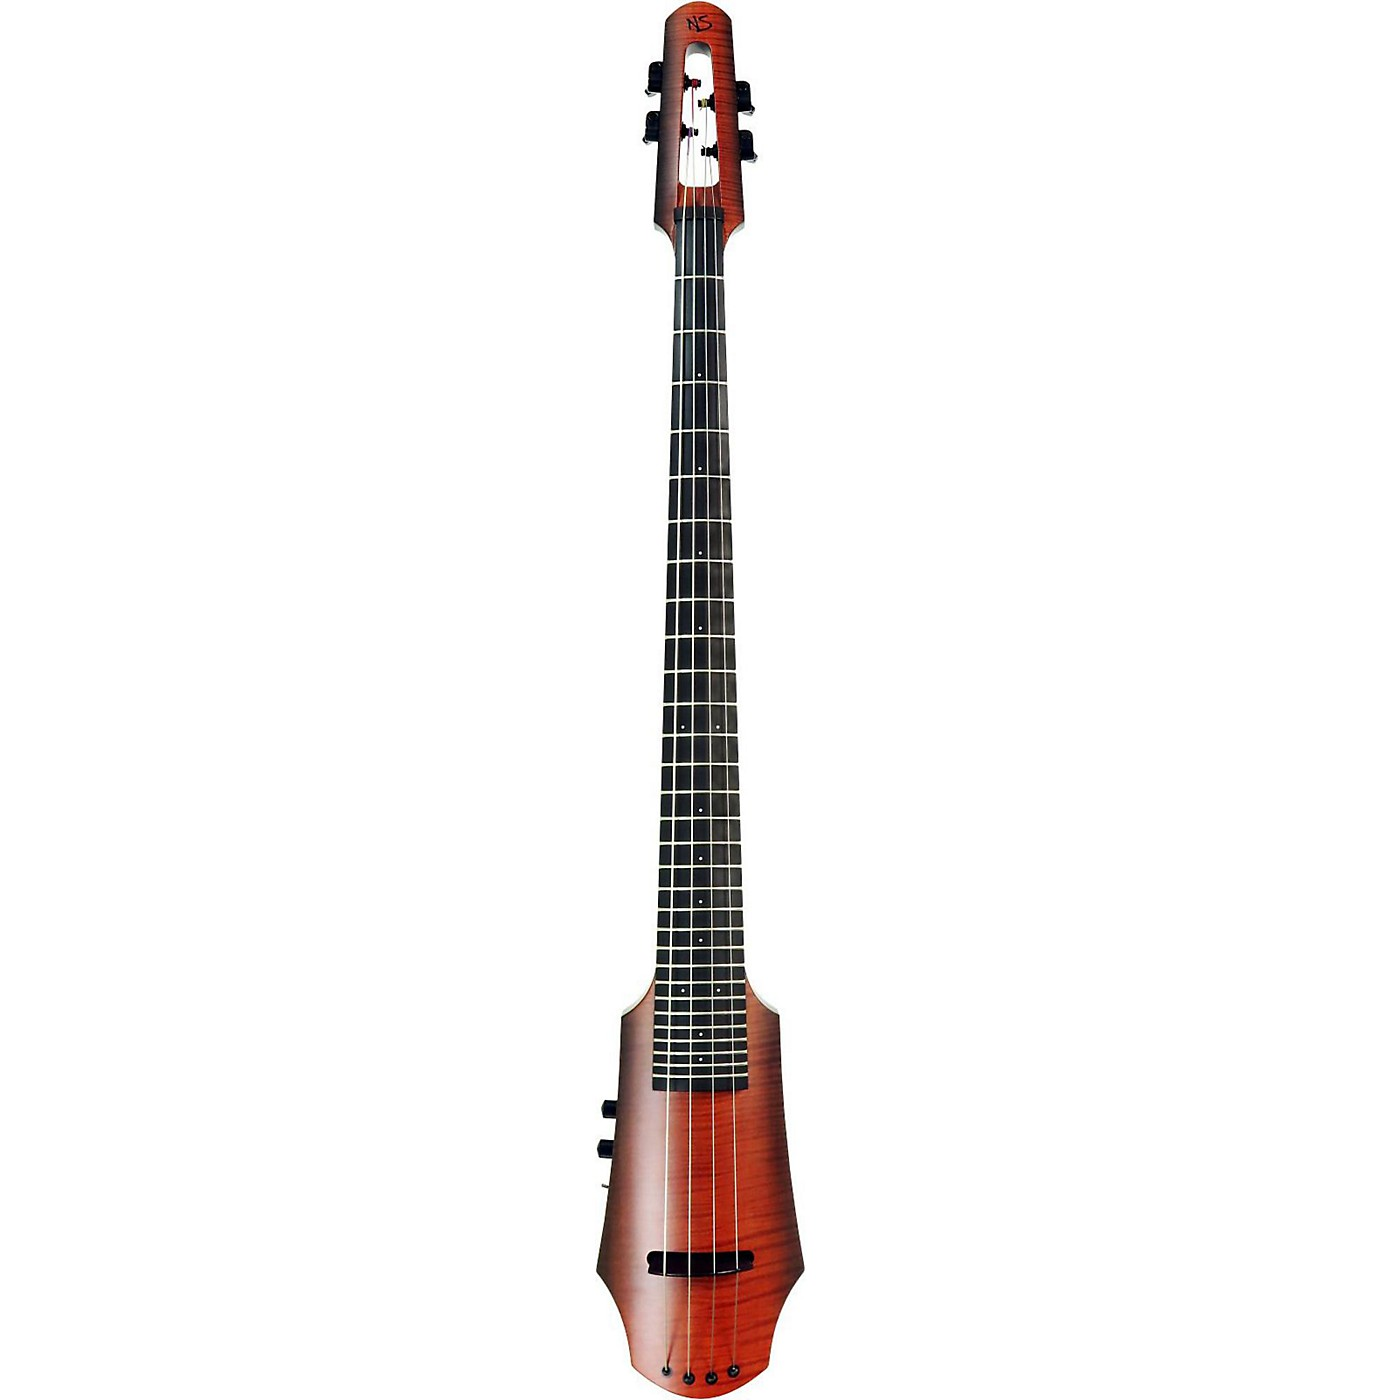 NS Design NXTa Active Series 4-String Fretted Electric Cello in Sunburst thumbnail